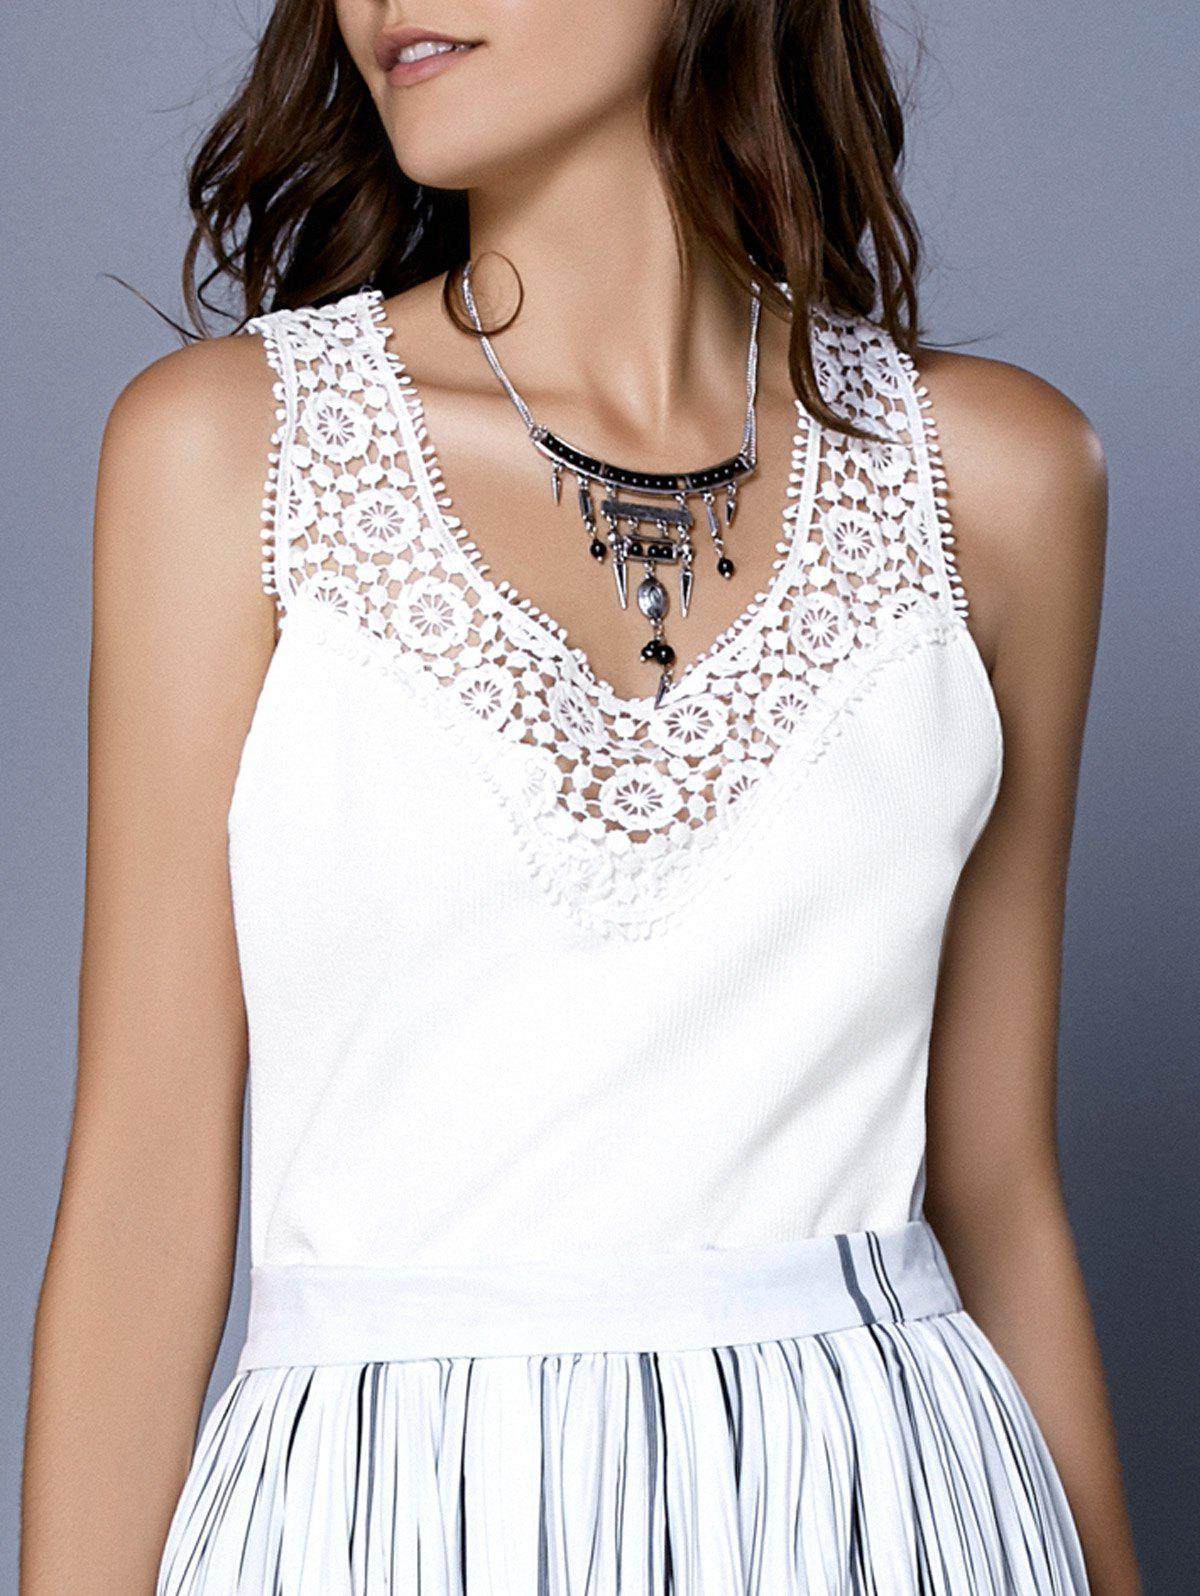 Fashionable Women's Scoop Neck Ribbed Lace Tank Top - WHITE XL